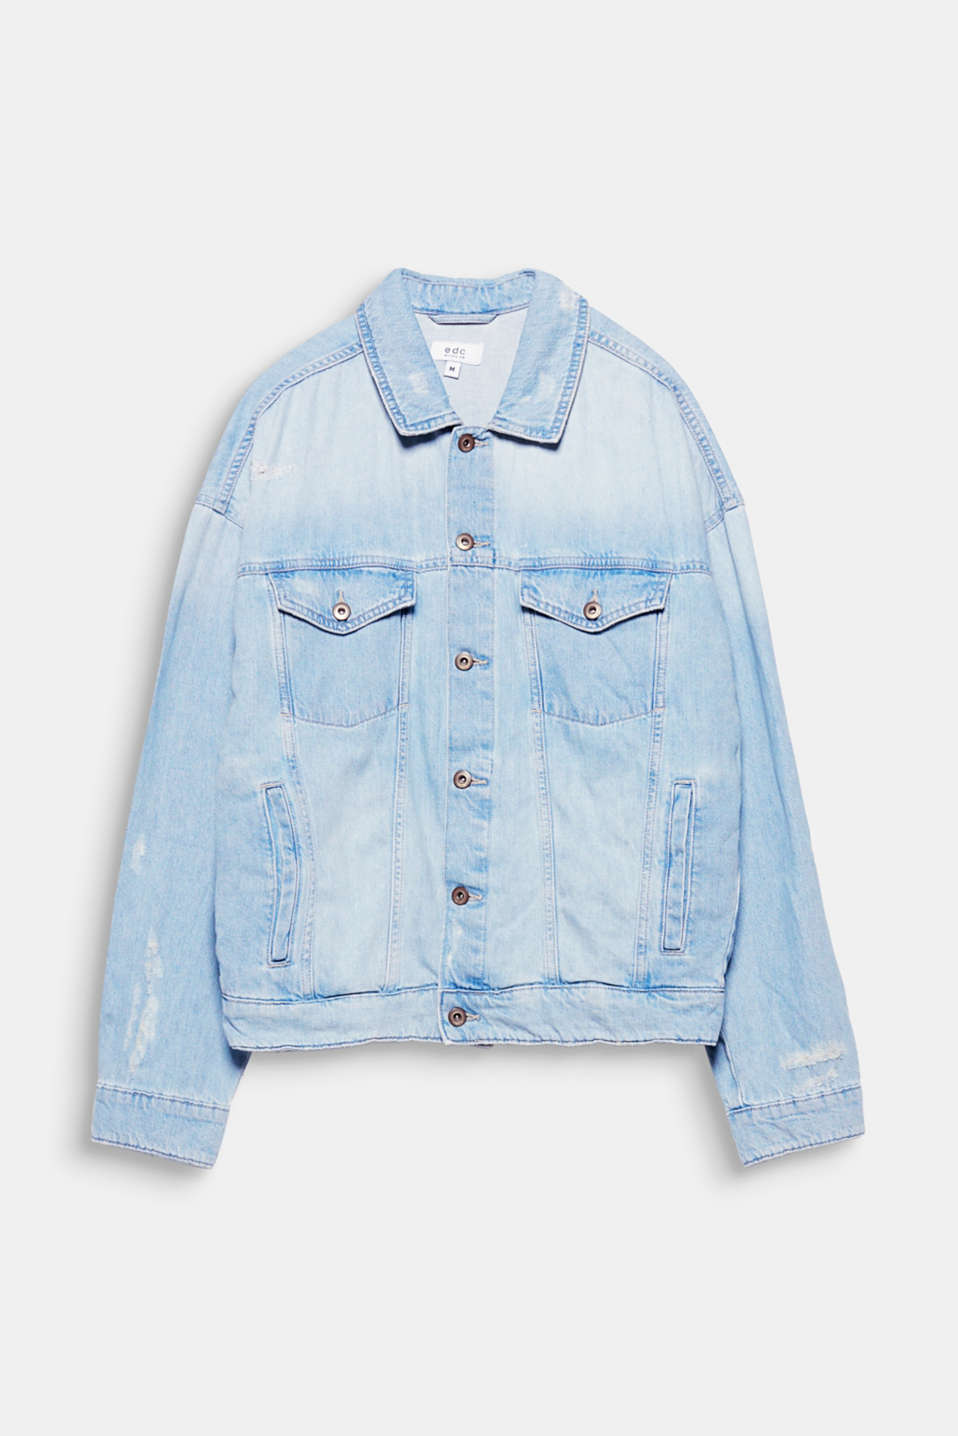 We love denim! The oversized fit and authentic vintage effects give this denim jacket a cool, urban look.